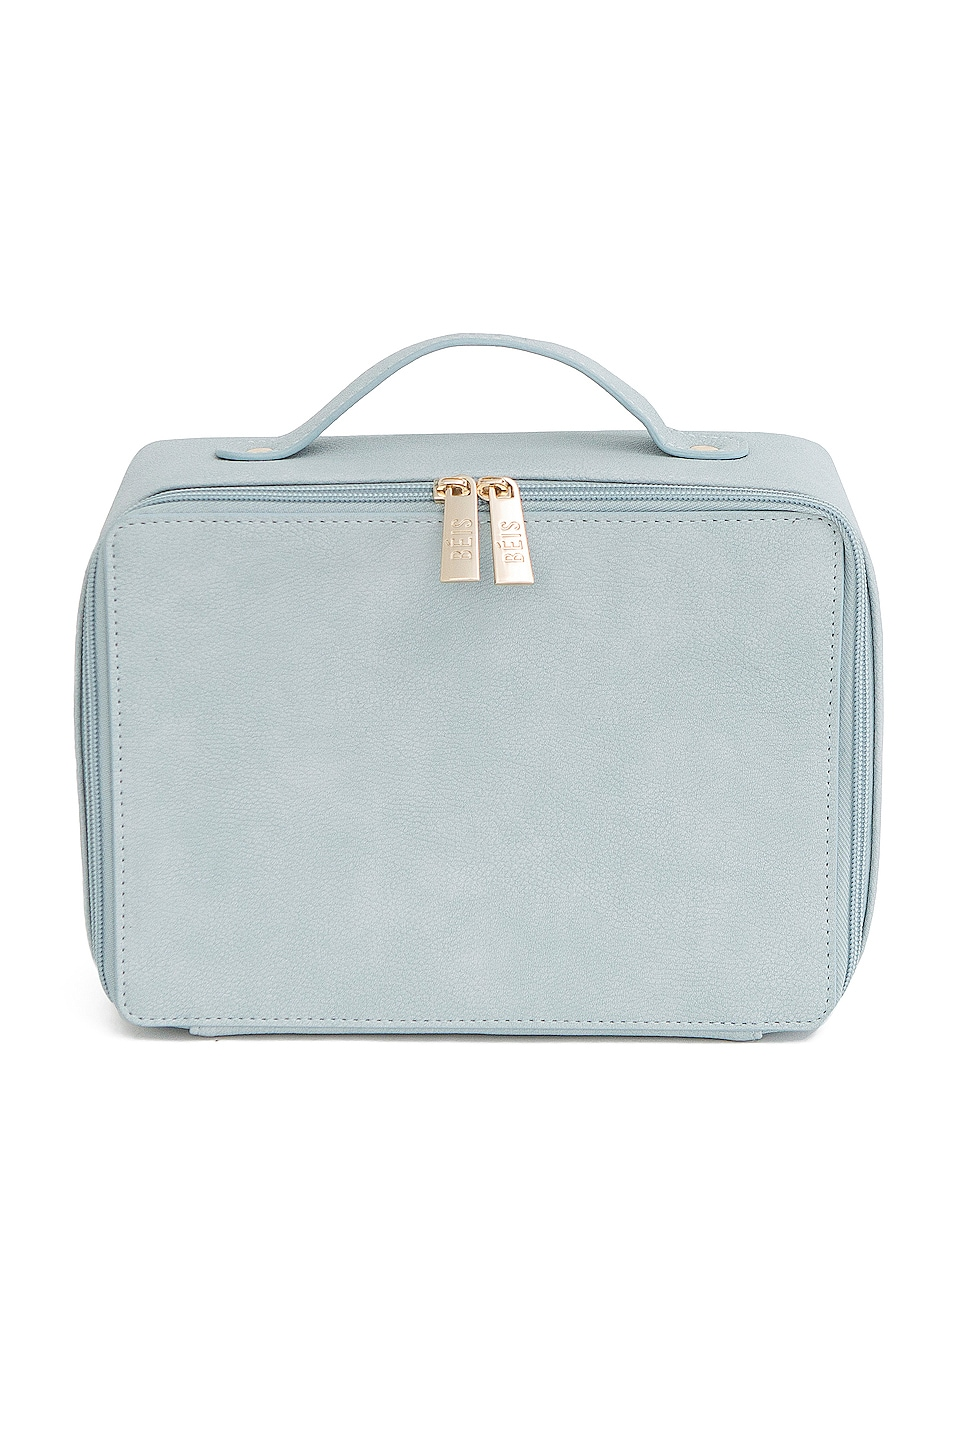 BEIS The Cosmetic Case in Light Blue